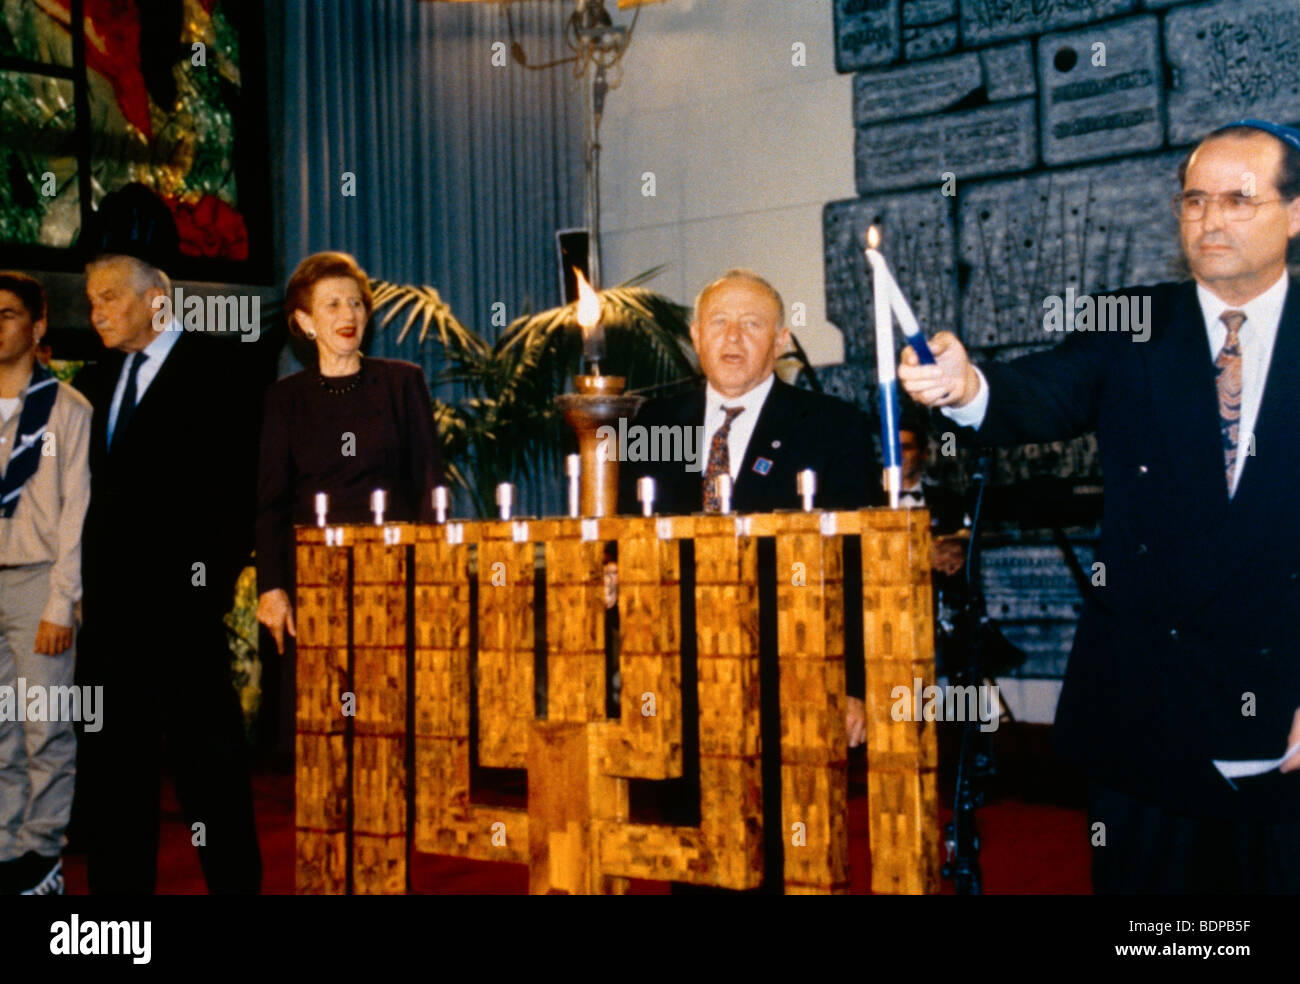 Israel Lighting The Hanukkah At The President Weitzman Home - Stock Image